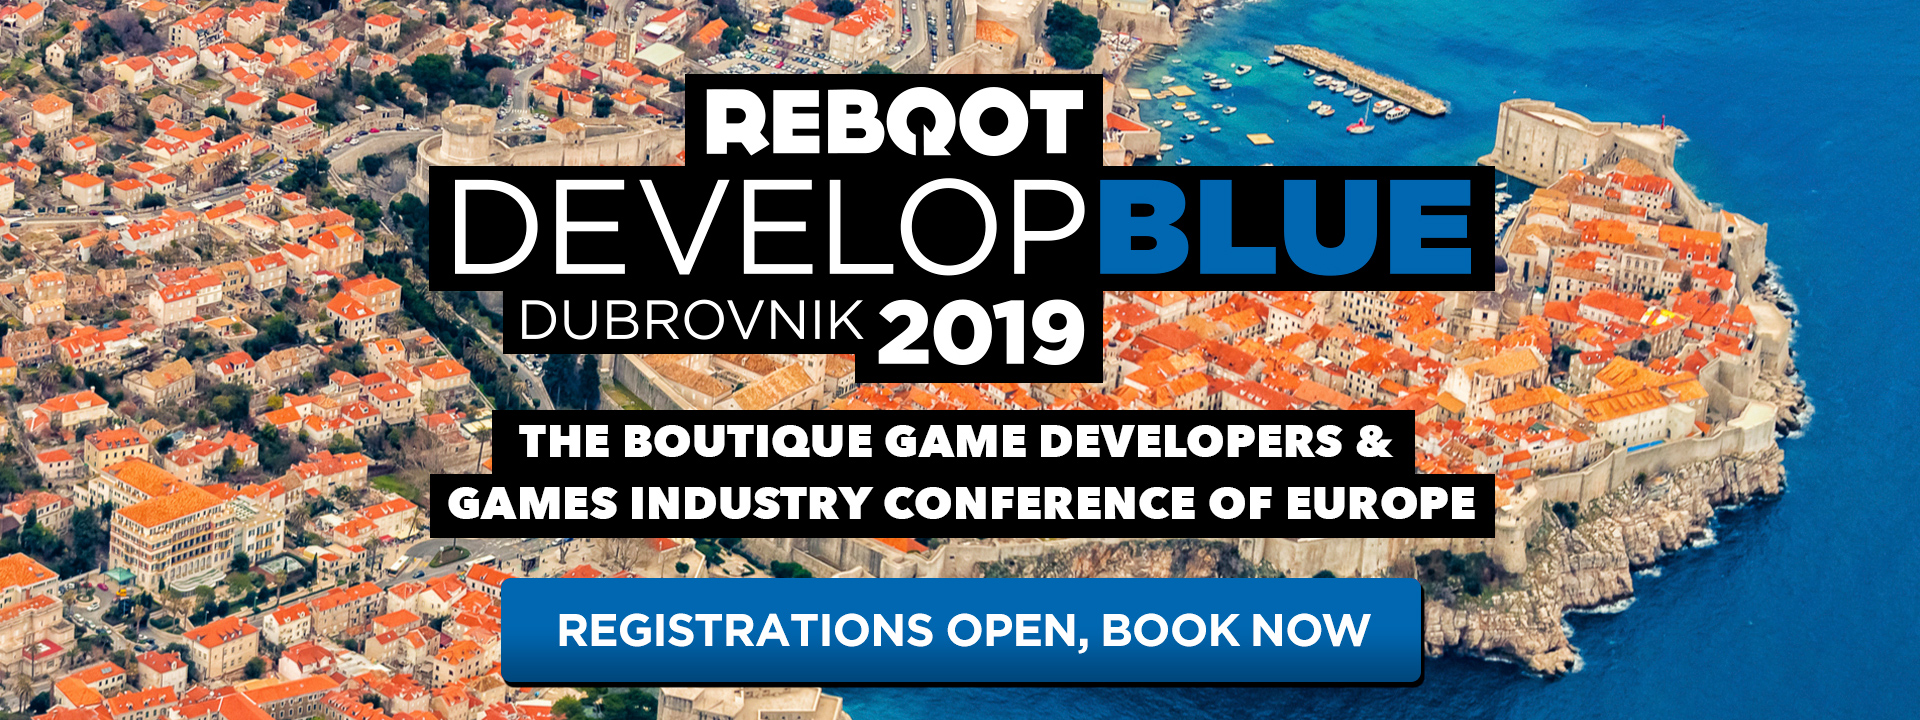 Reboot Develop Blue